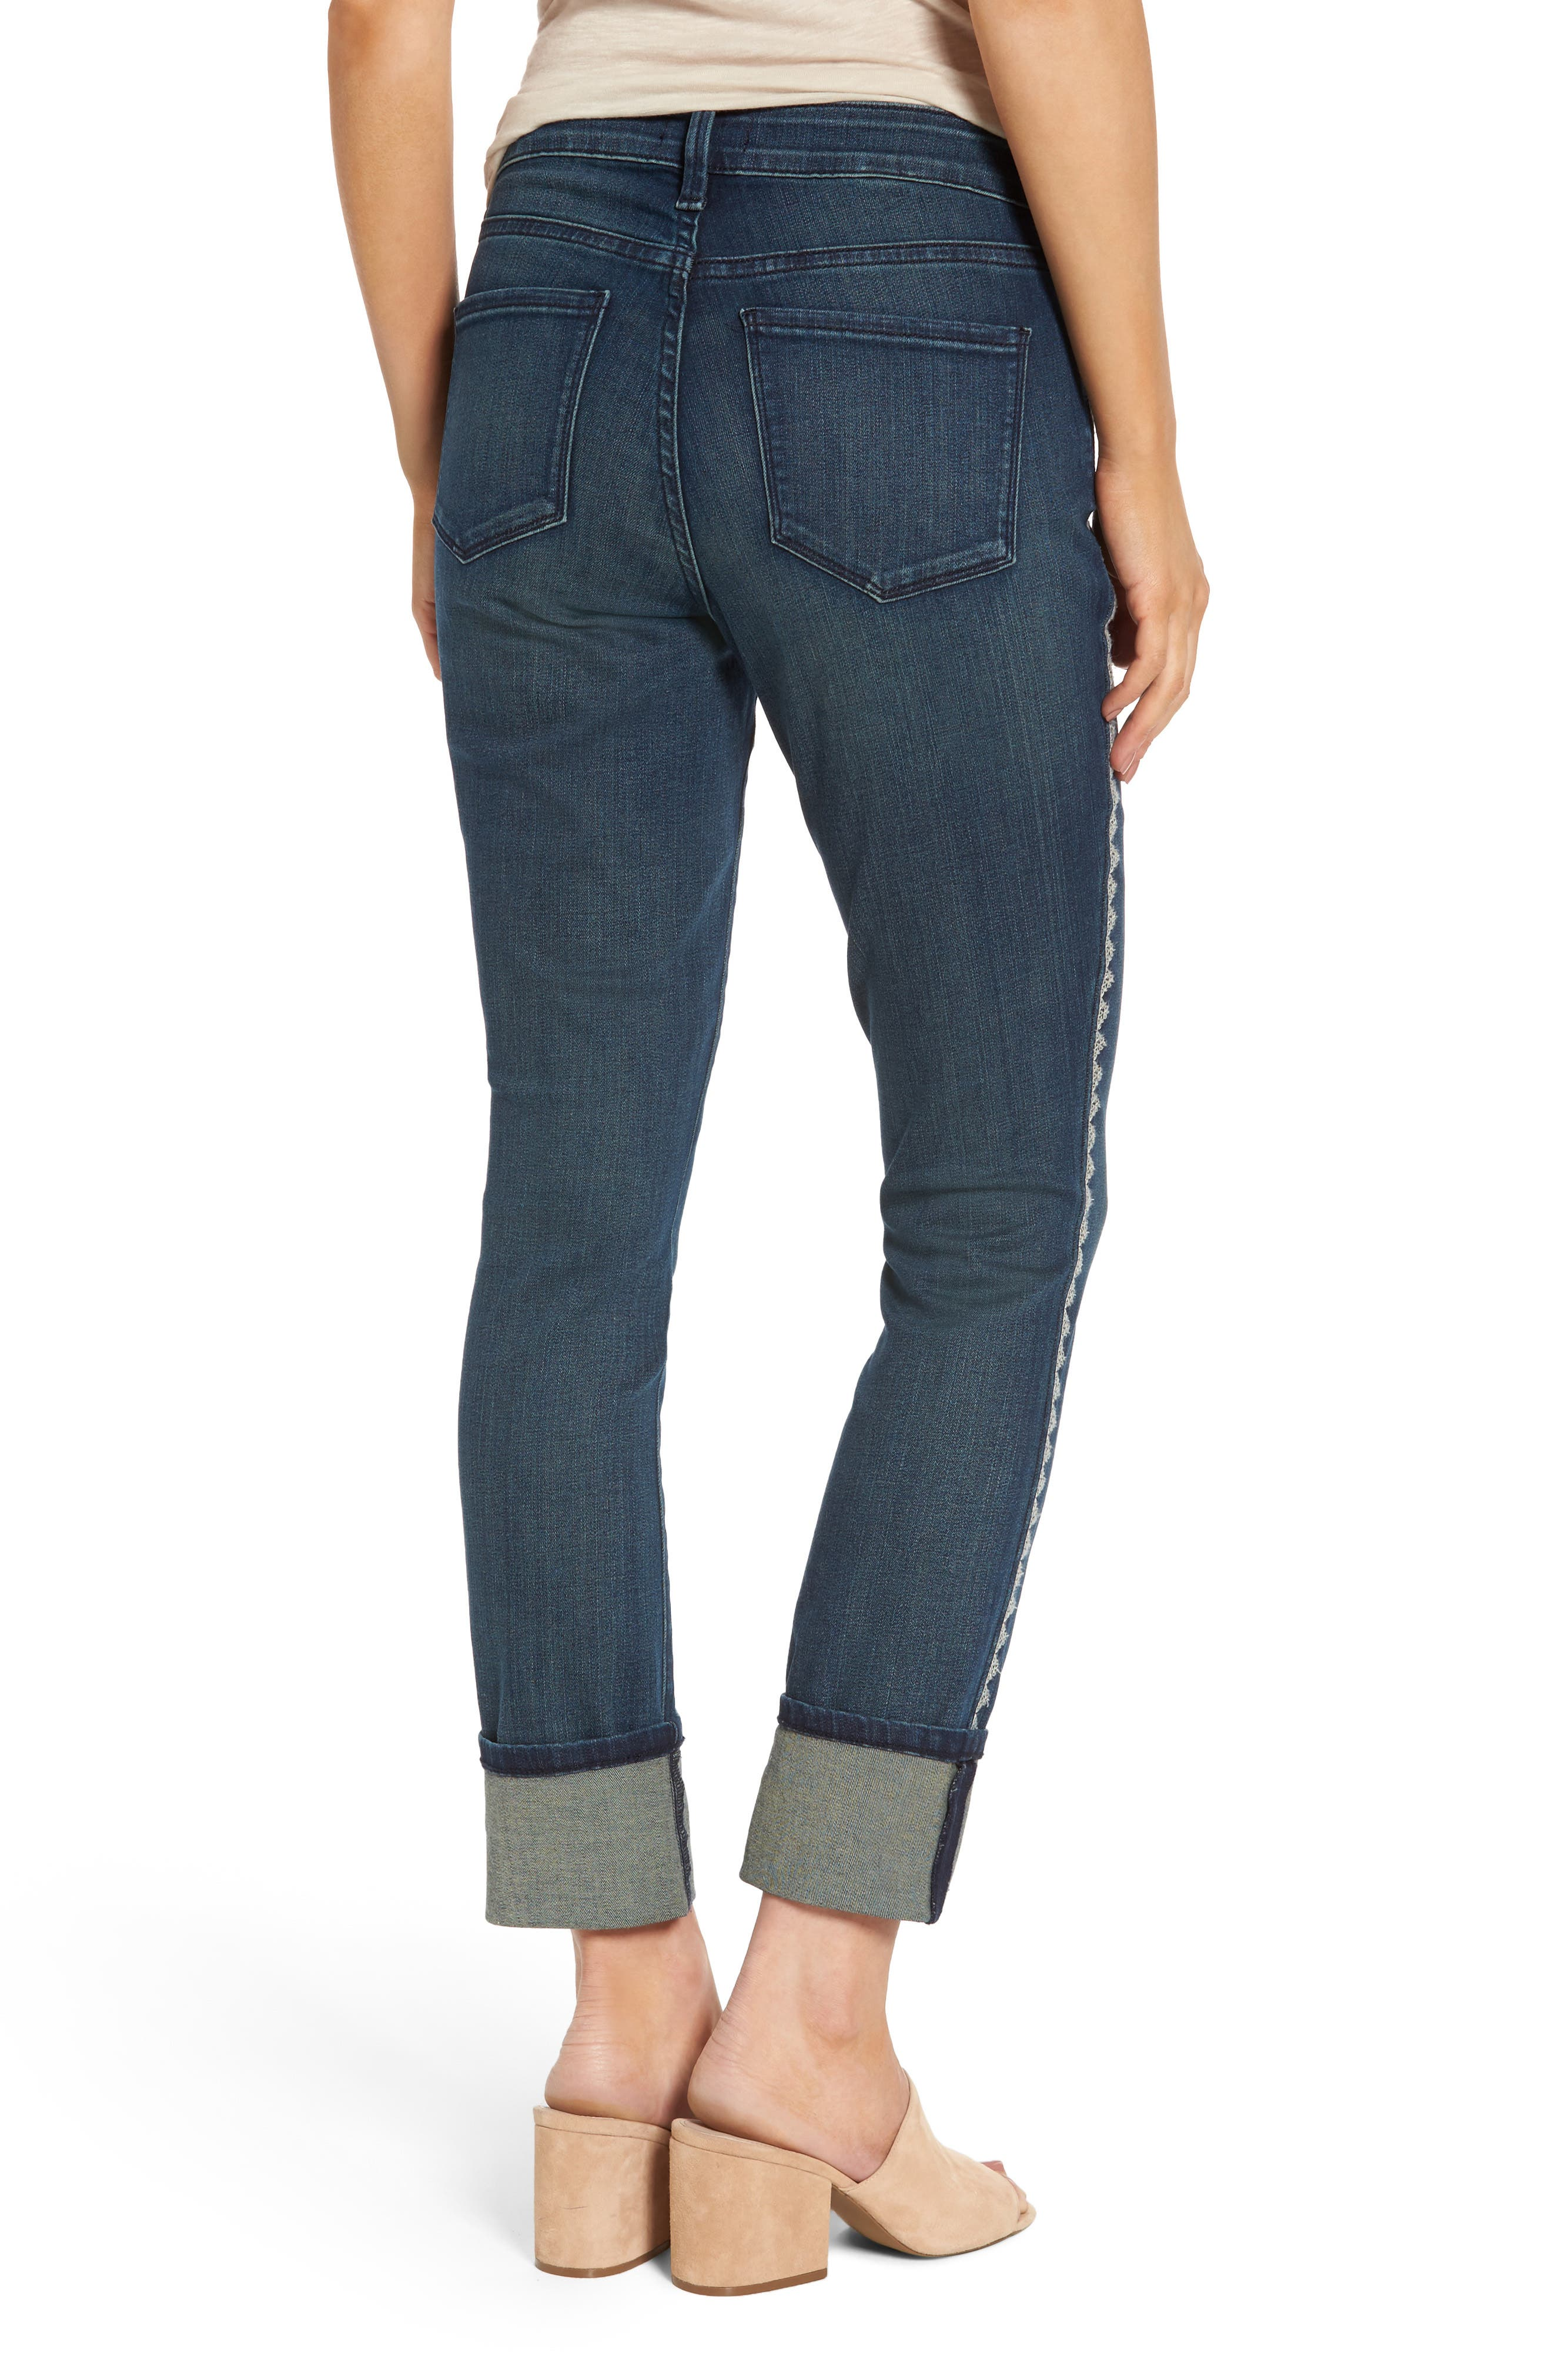 Alina Embroidered Wide Cuff Stretch Ankle Jeans,                             Alternate thumbnail 2, color,                             Oak Hill